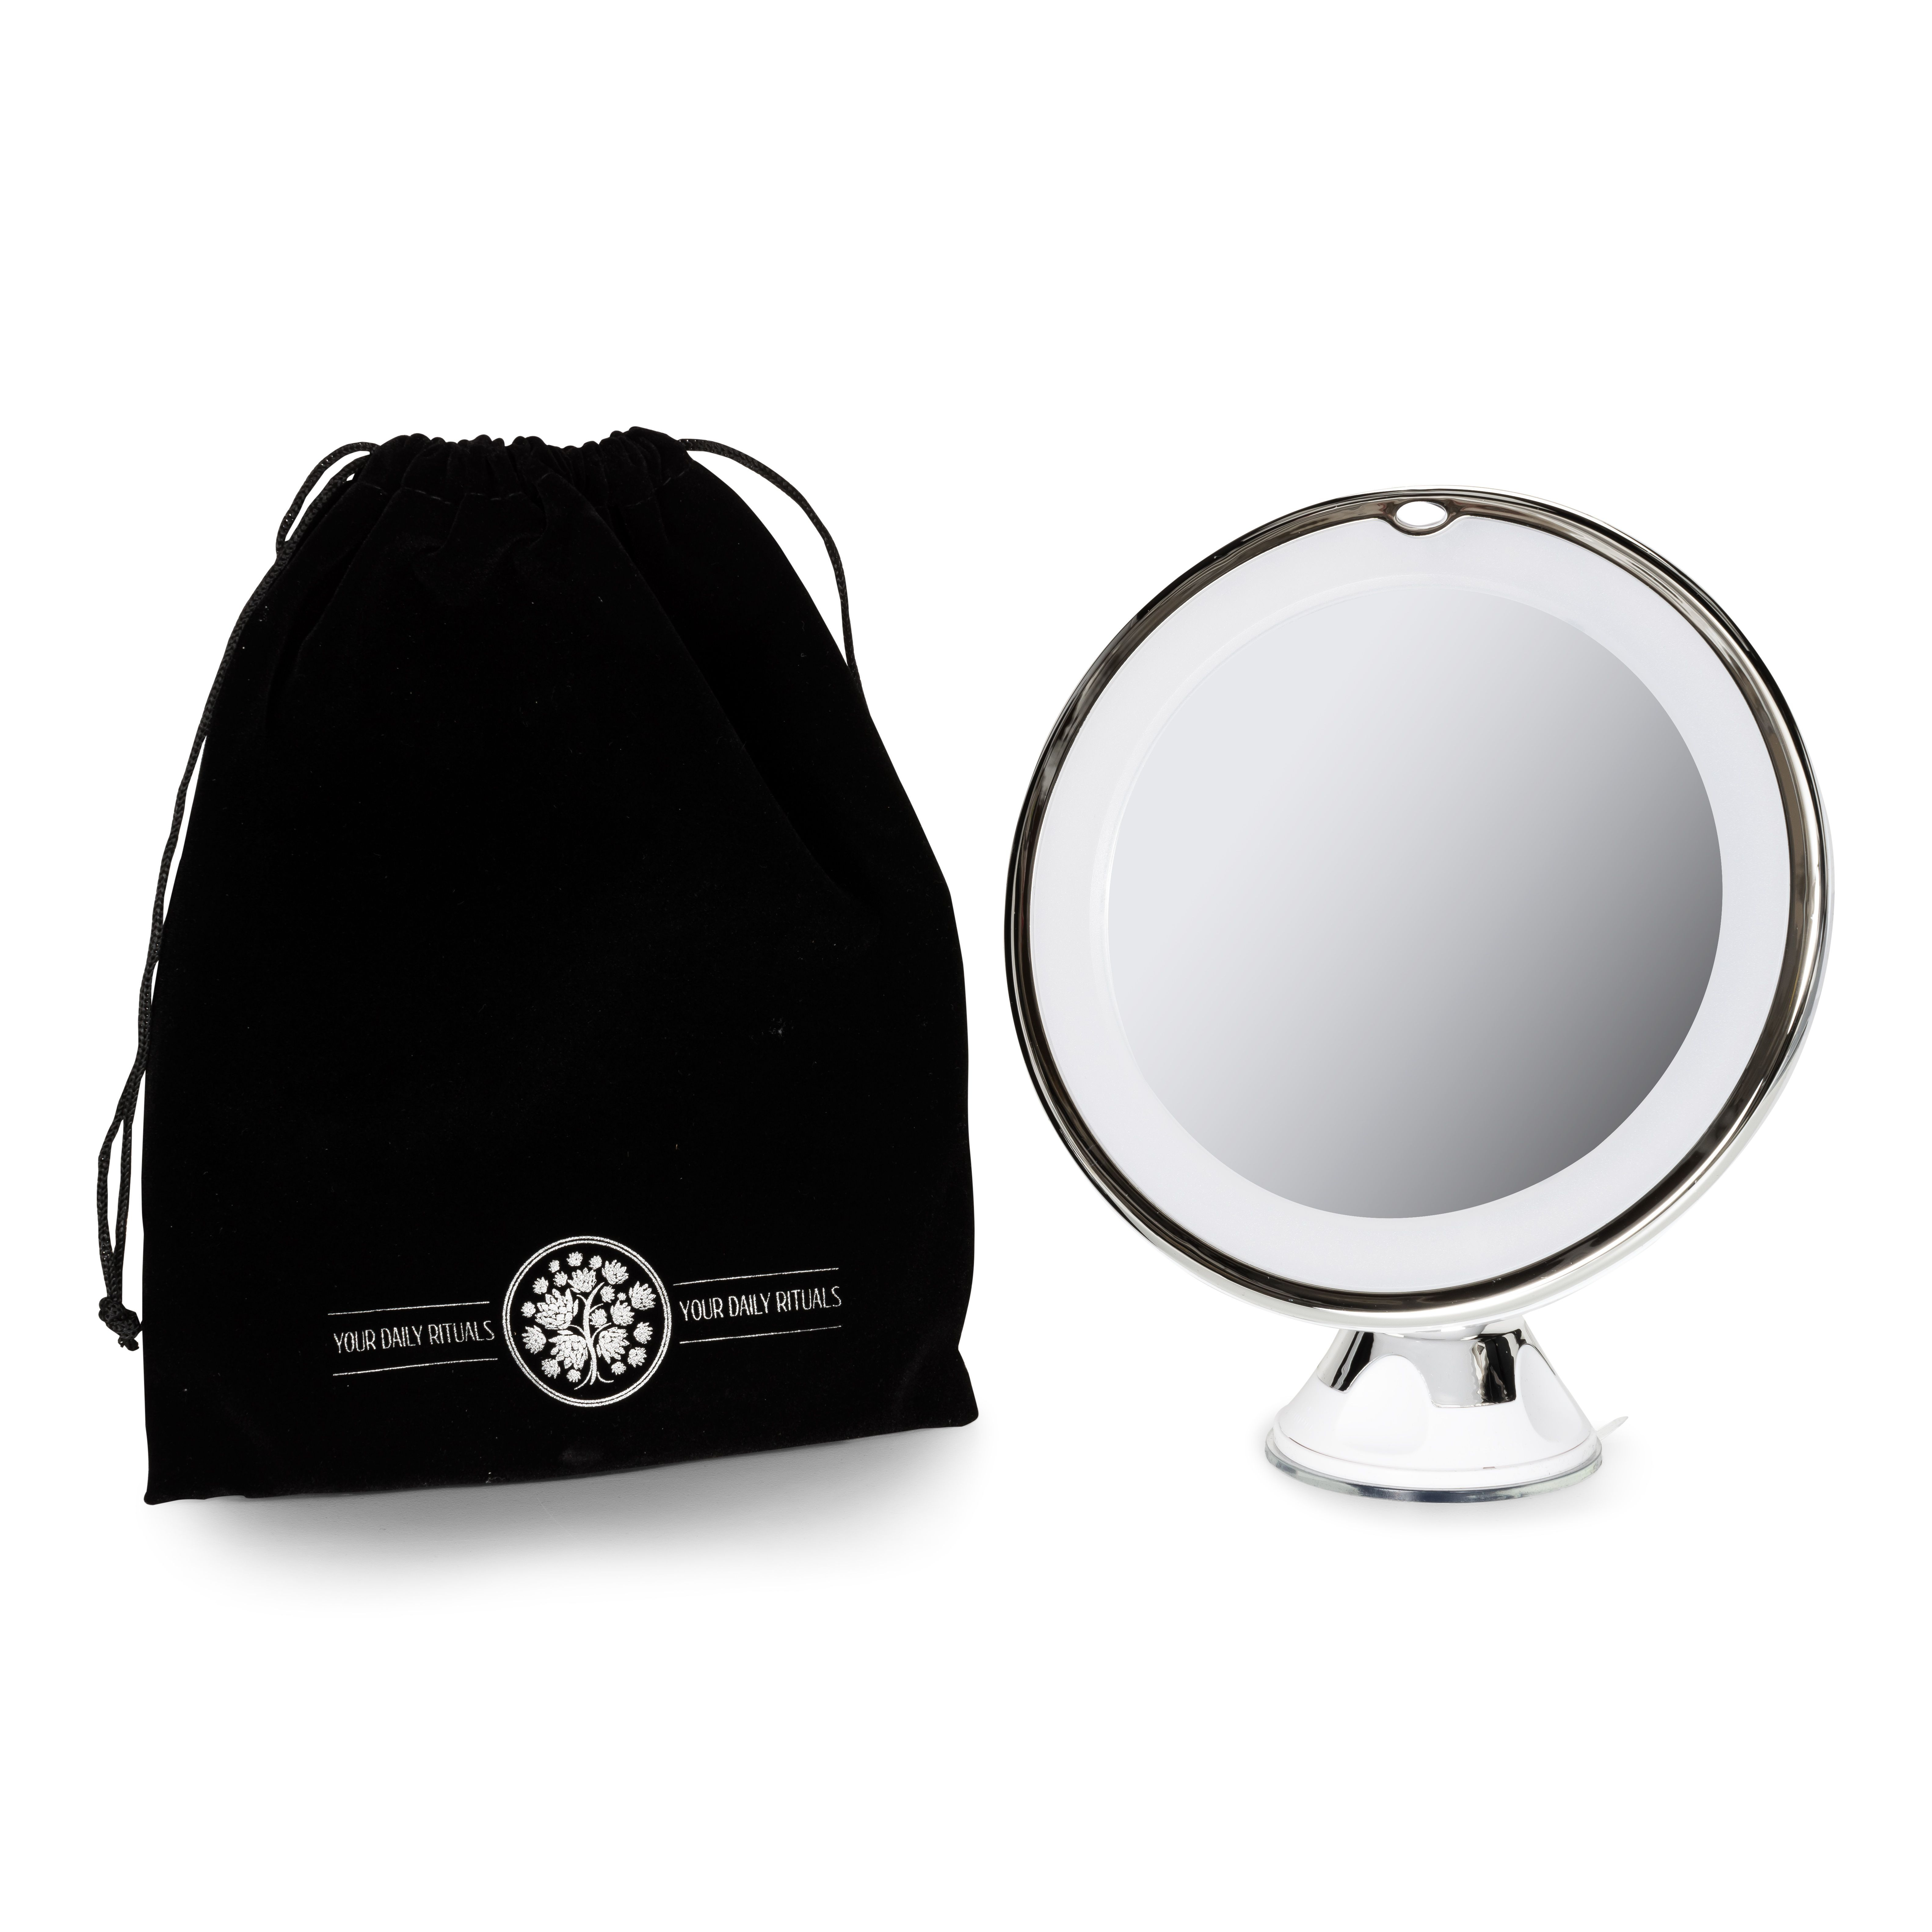 We've got the Your Daily Rituals Magnifying Lighted Makeup